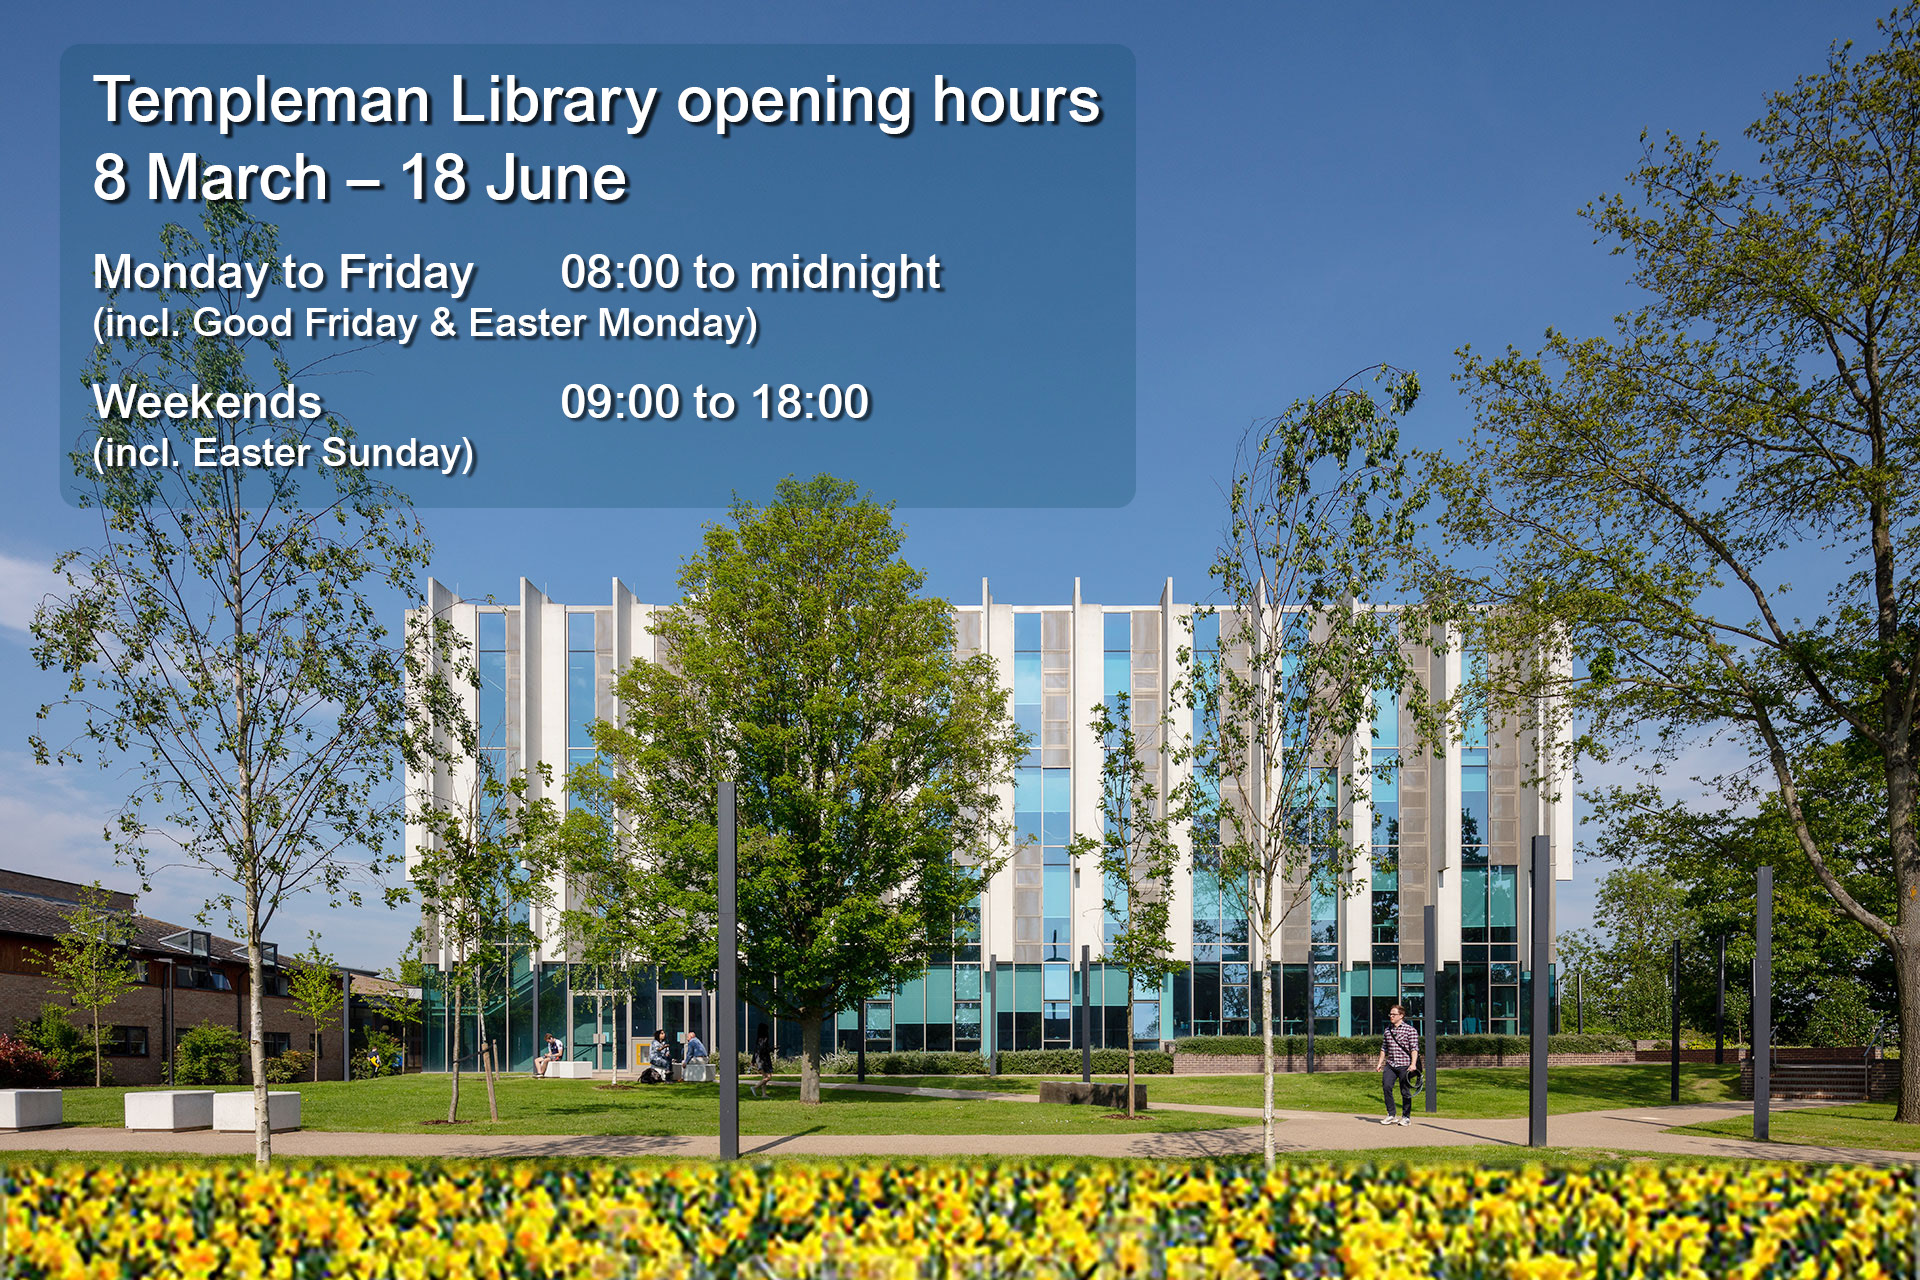 Templeman Library with field of daffodils